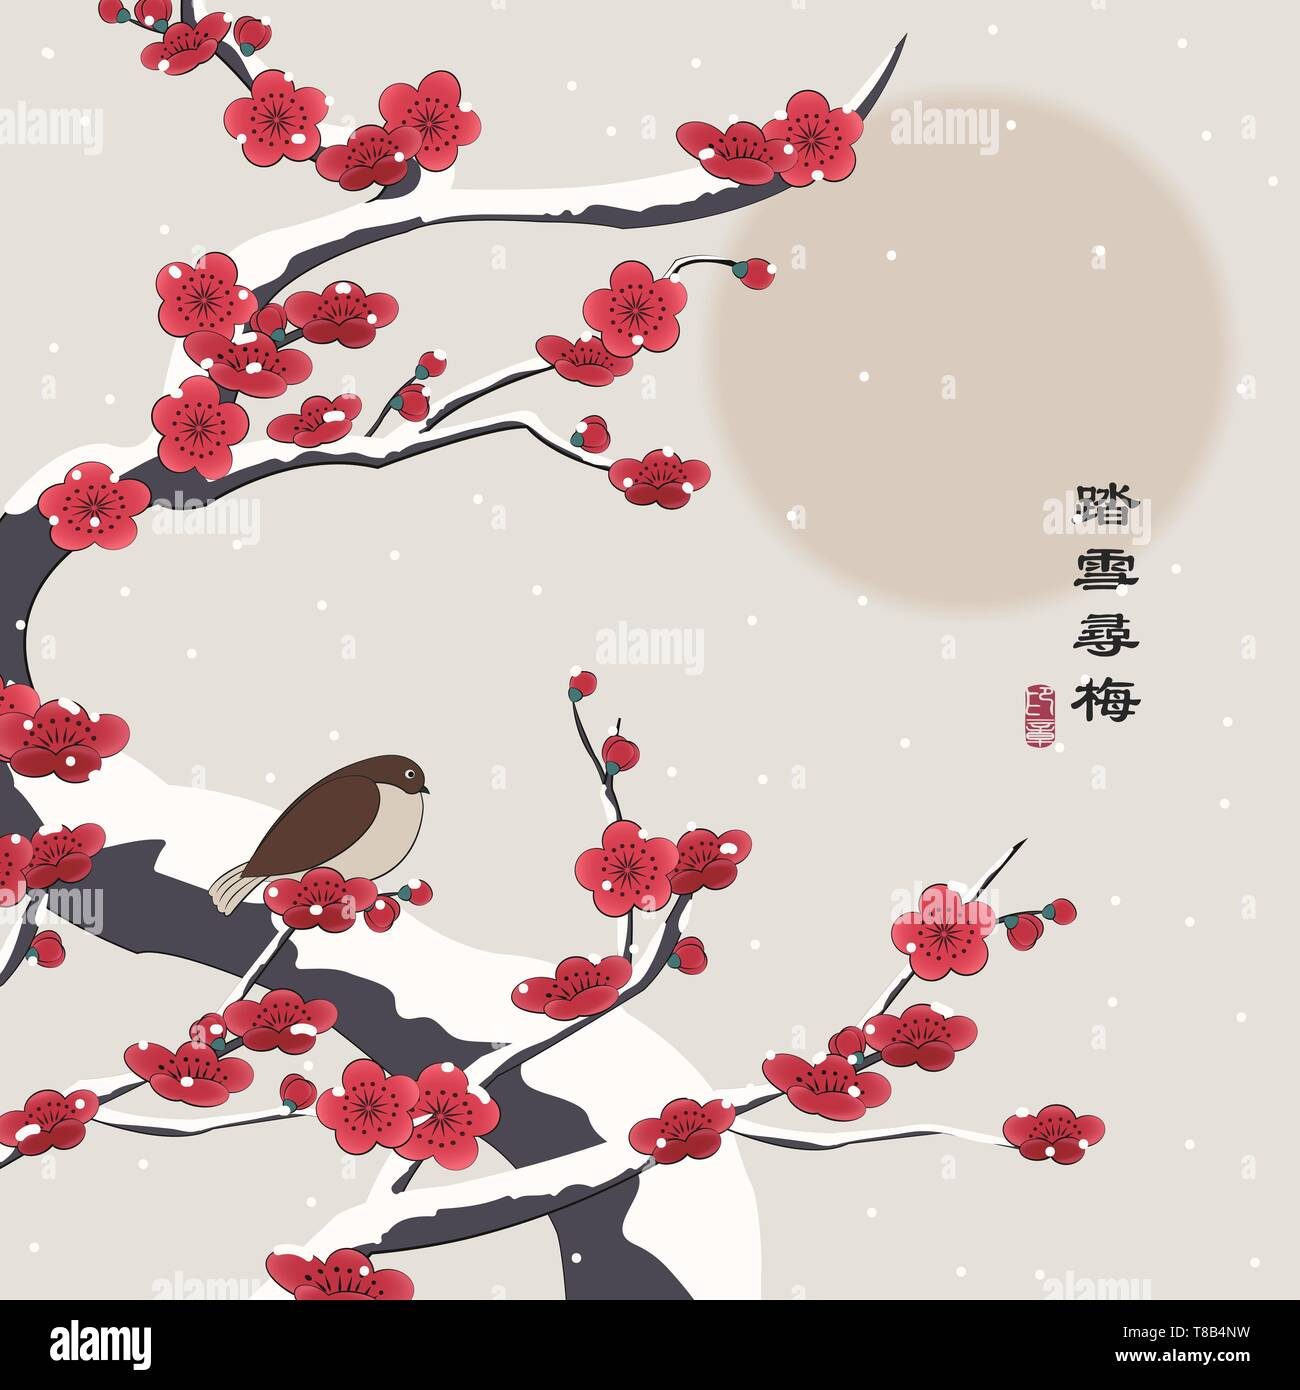 Retro colorful Chinese style vector illustration little bird standing on a plum flower tree in the winter. Translation for the Chinese word : Go over  - Stock Vector